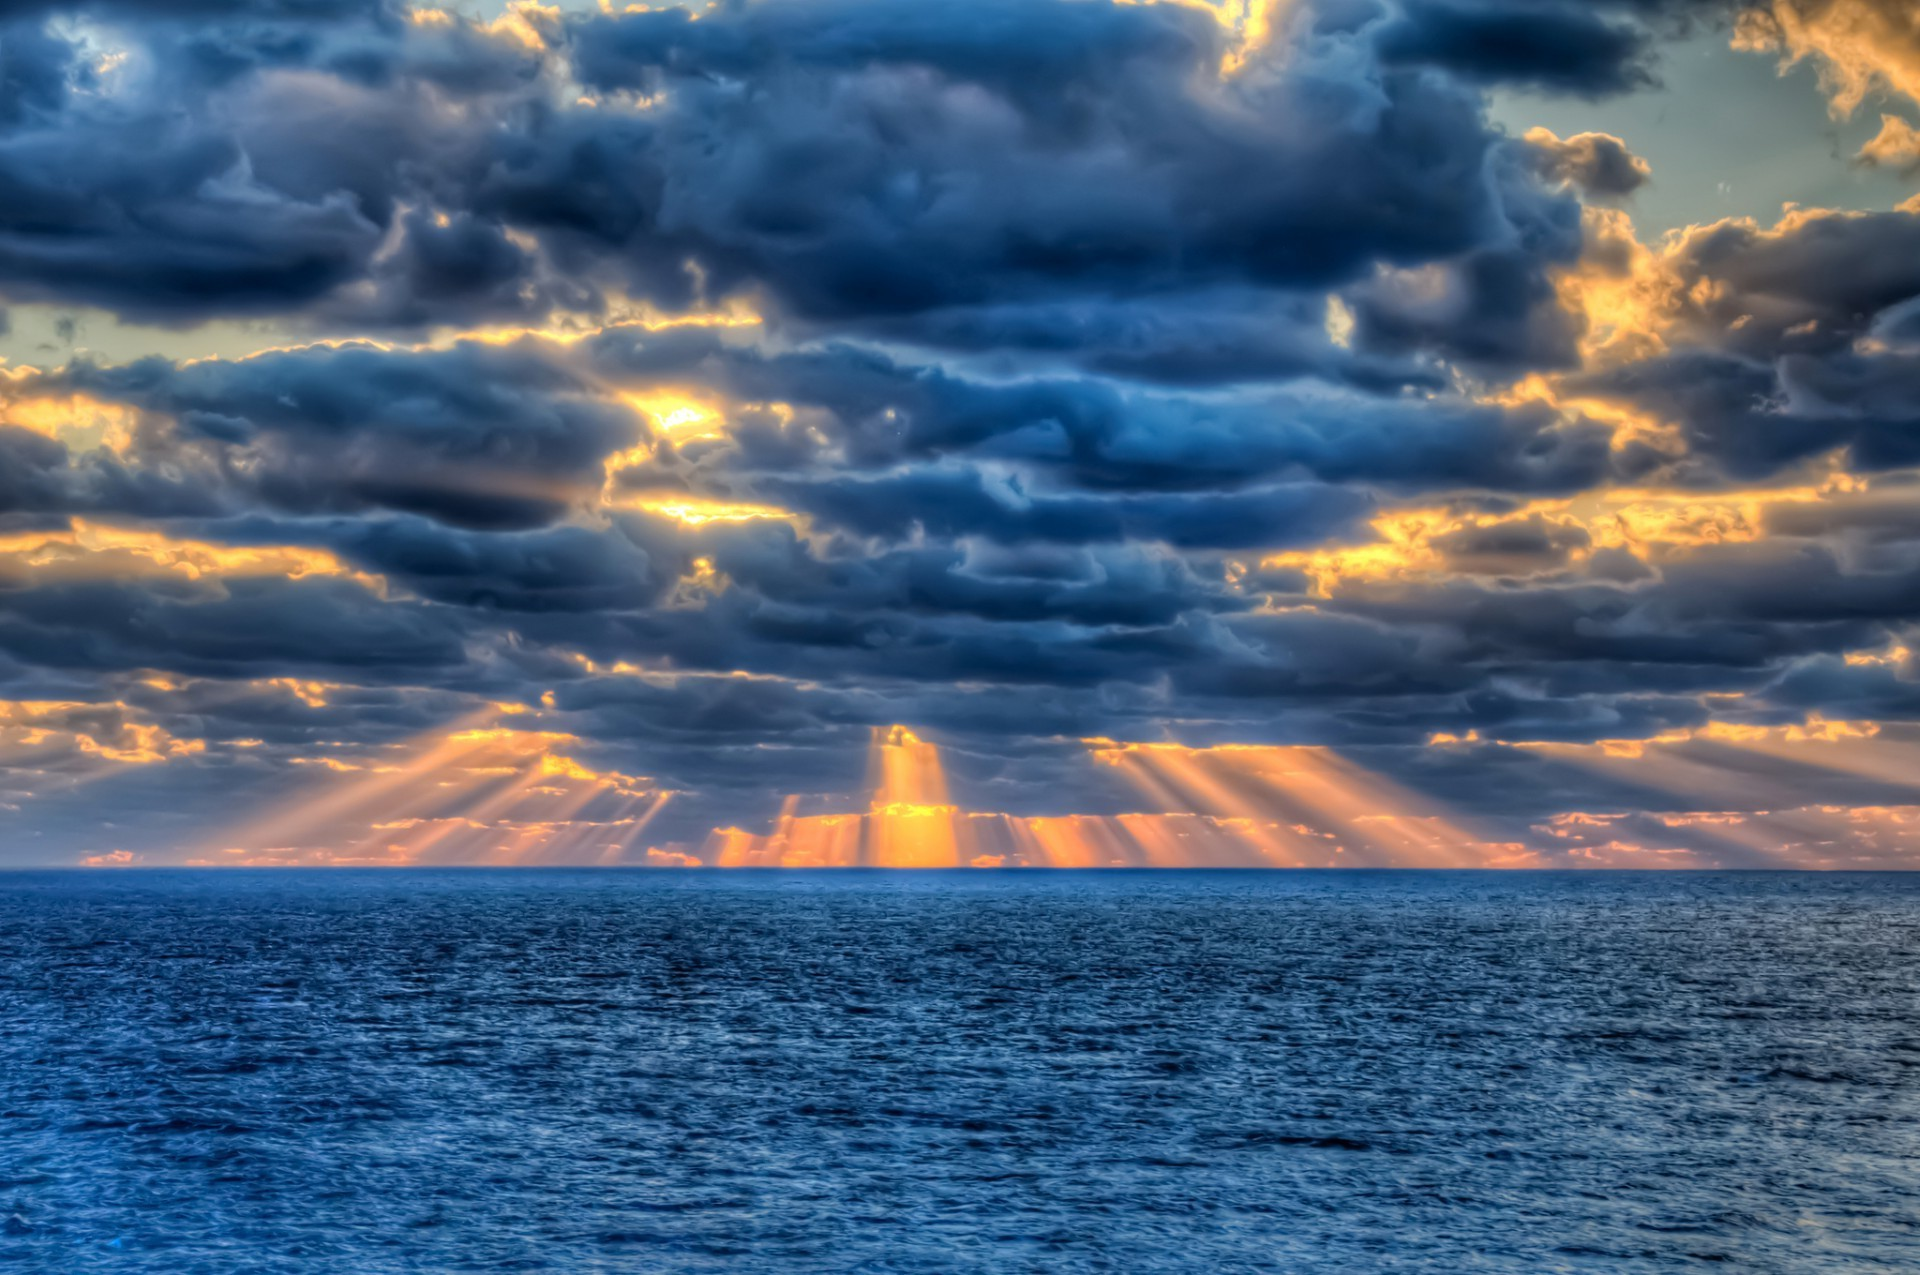 The sun's rays breaking through the clouds over the sea